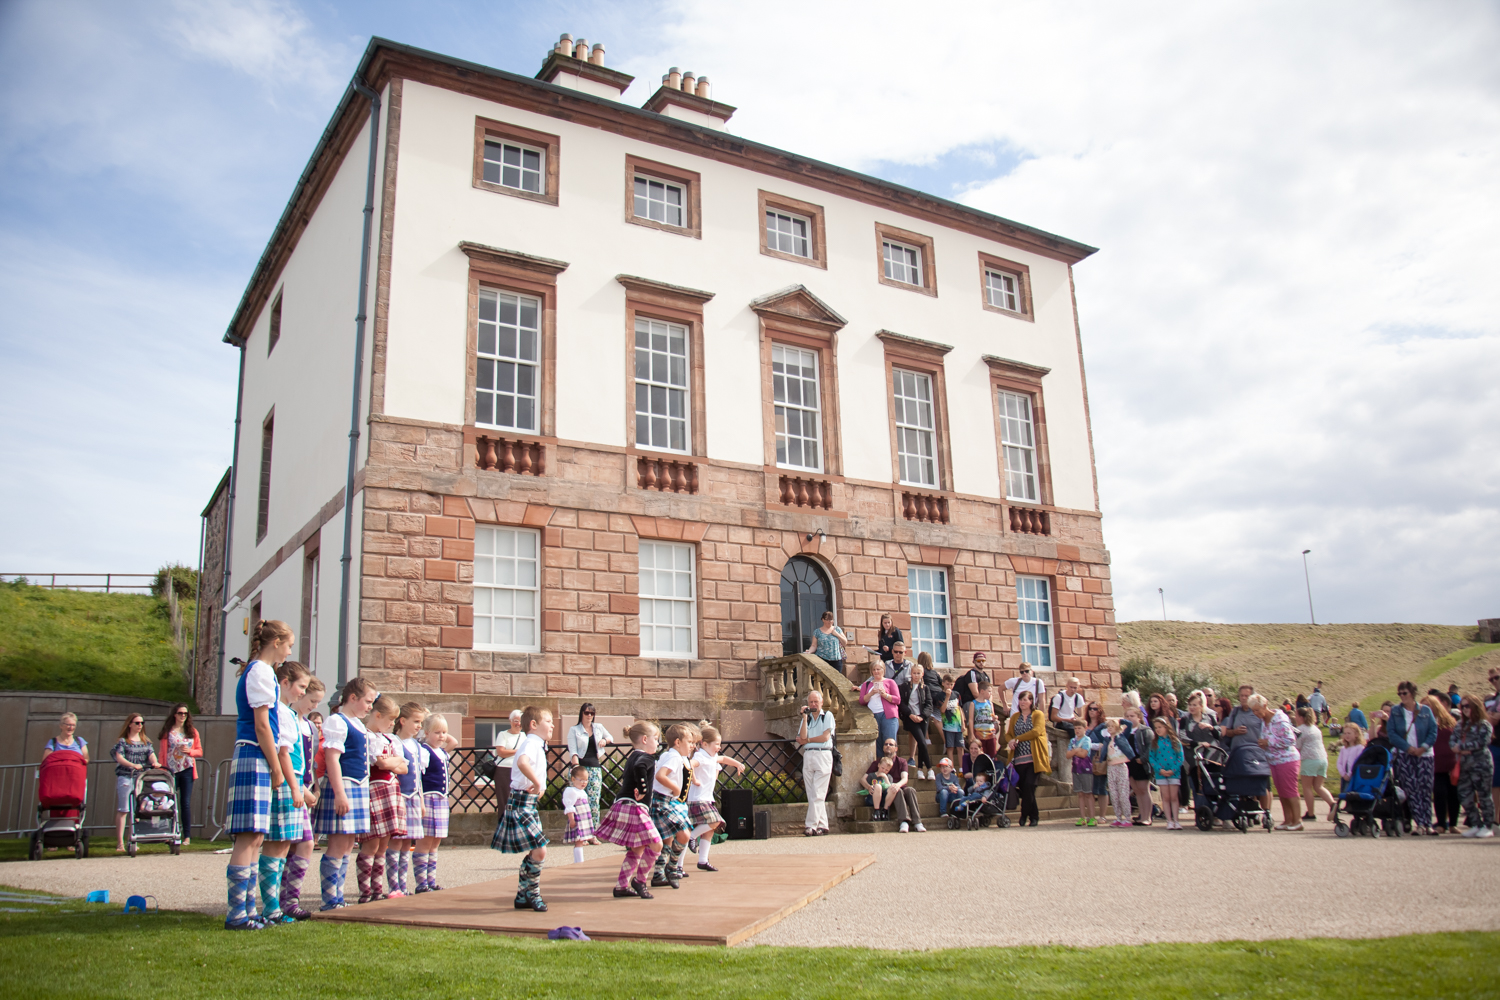 PICTORIAL_BERWICK_eyemouth-gunsgreen-extravaganza-photography-entertainment-party-event-photographer-harbour-gary-dunn-dancers-stilts-performances-speeches-day-out-summer-4591.jpg